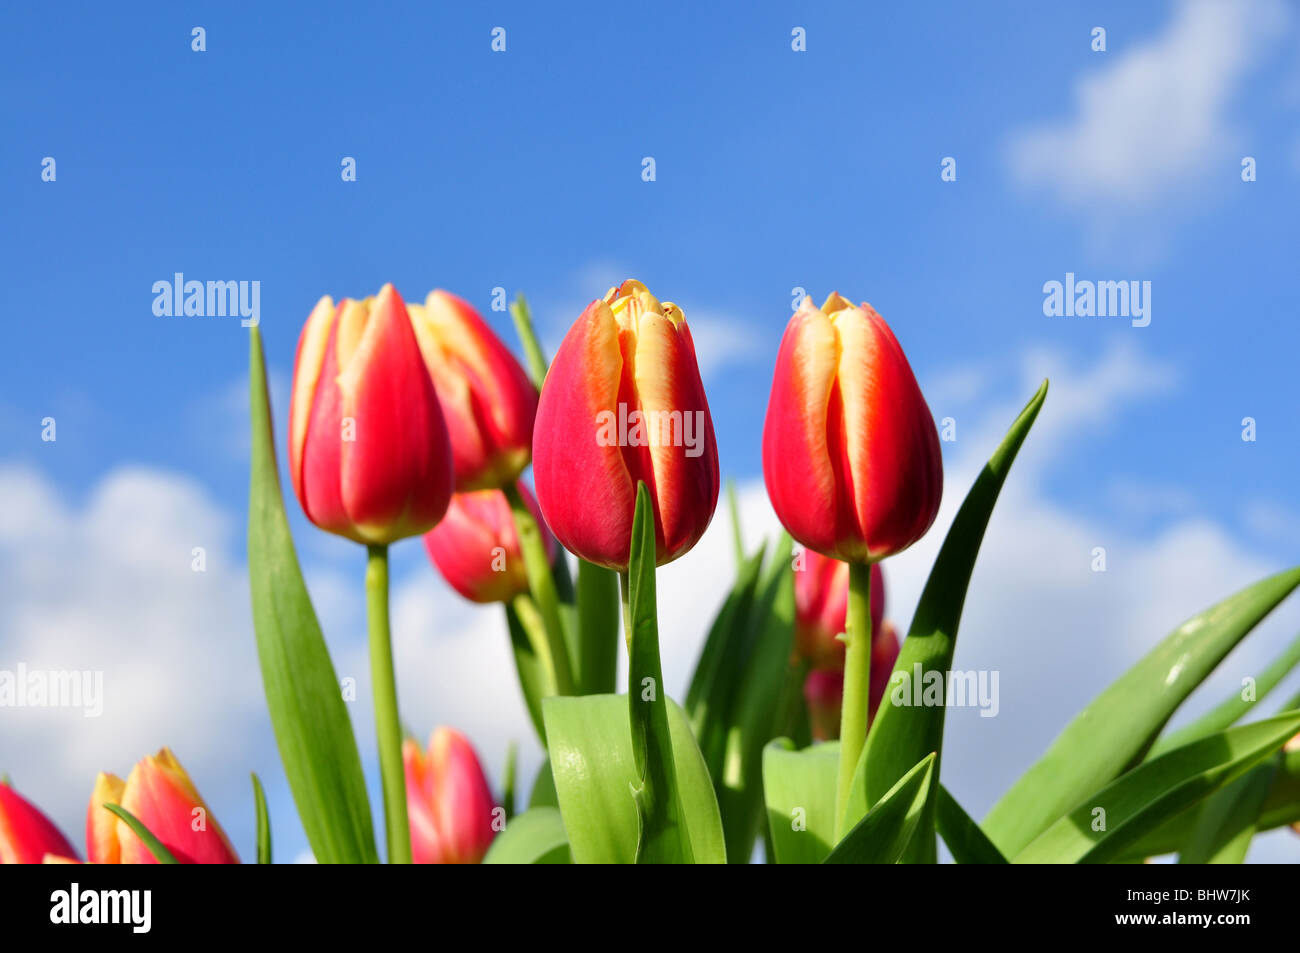 Red tulip arrangement with a blue sky background. Shallow depth of field, focus on centre tulips. - Stock Image